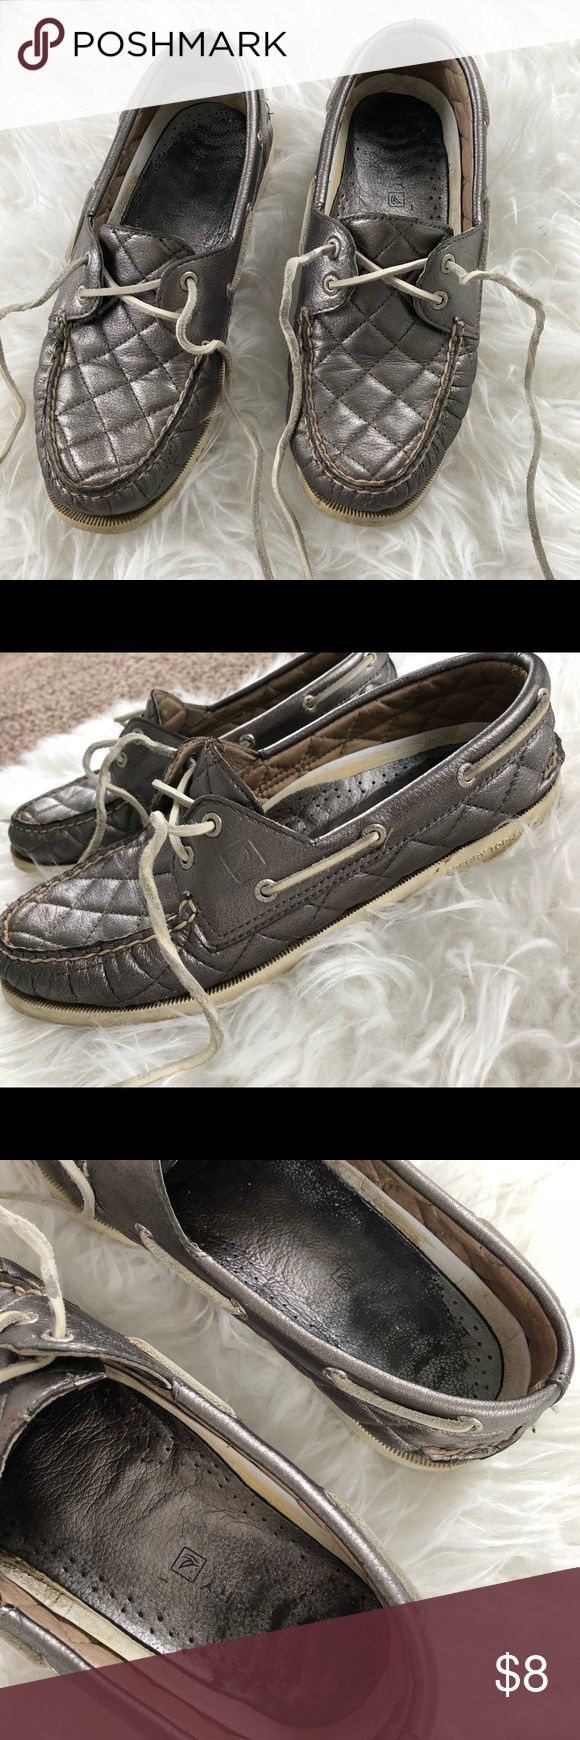 Pewter Sperry TopSiders Very well loved Sperry TopSiders. These are in worn condition, that's why I'm selling them so cheap. They still have life to them though! I have pictured the condition! Size Women's 9M. Sperry Top-Sider Shoes Sneakers